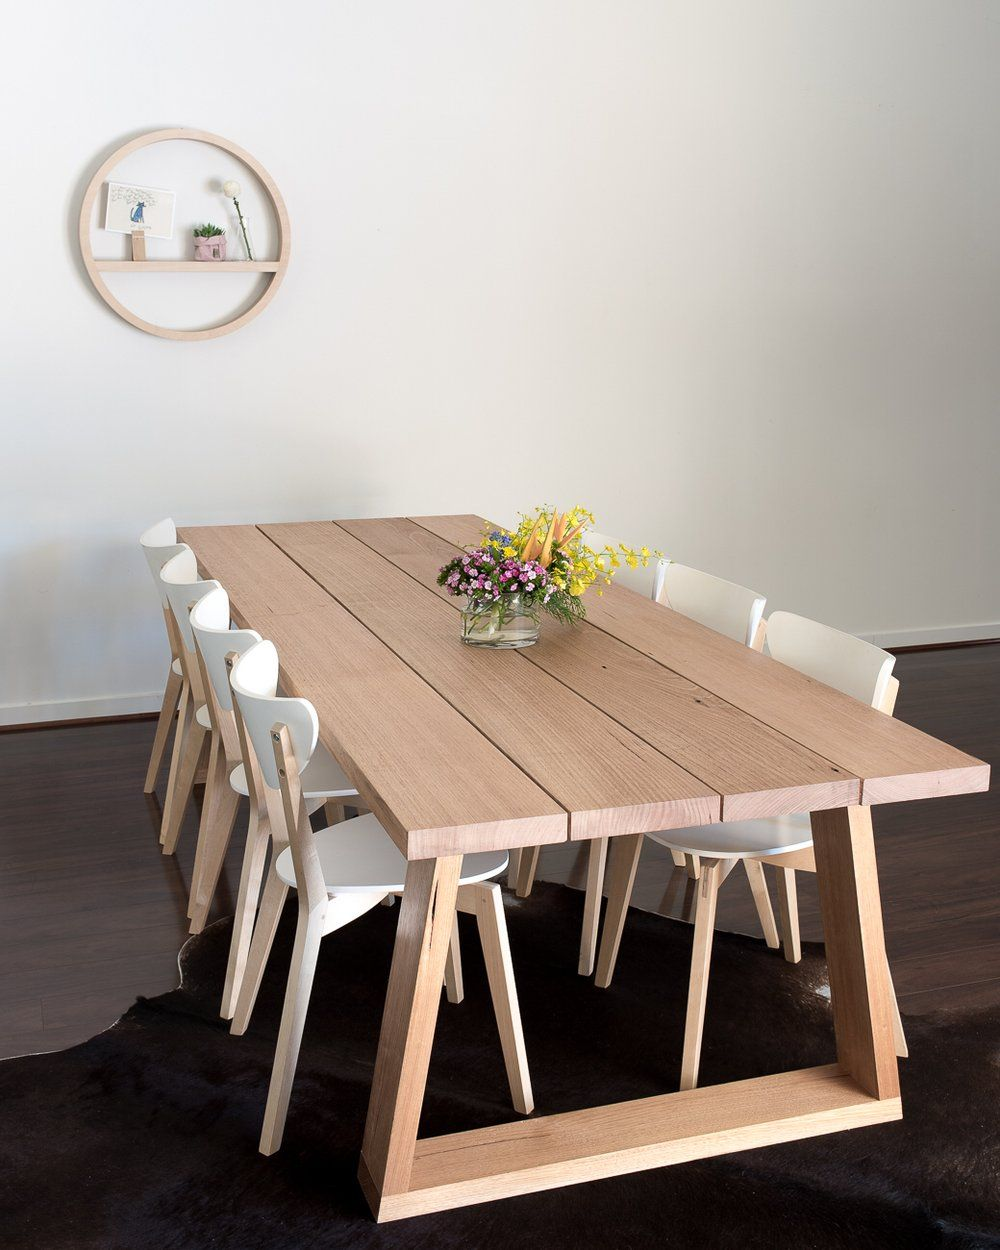 Image Of Plank  Dining Table  Furniture  Pinterest  Plank Glamorous Plank Dining Room Table Design Decoration